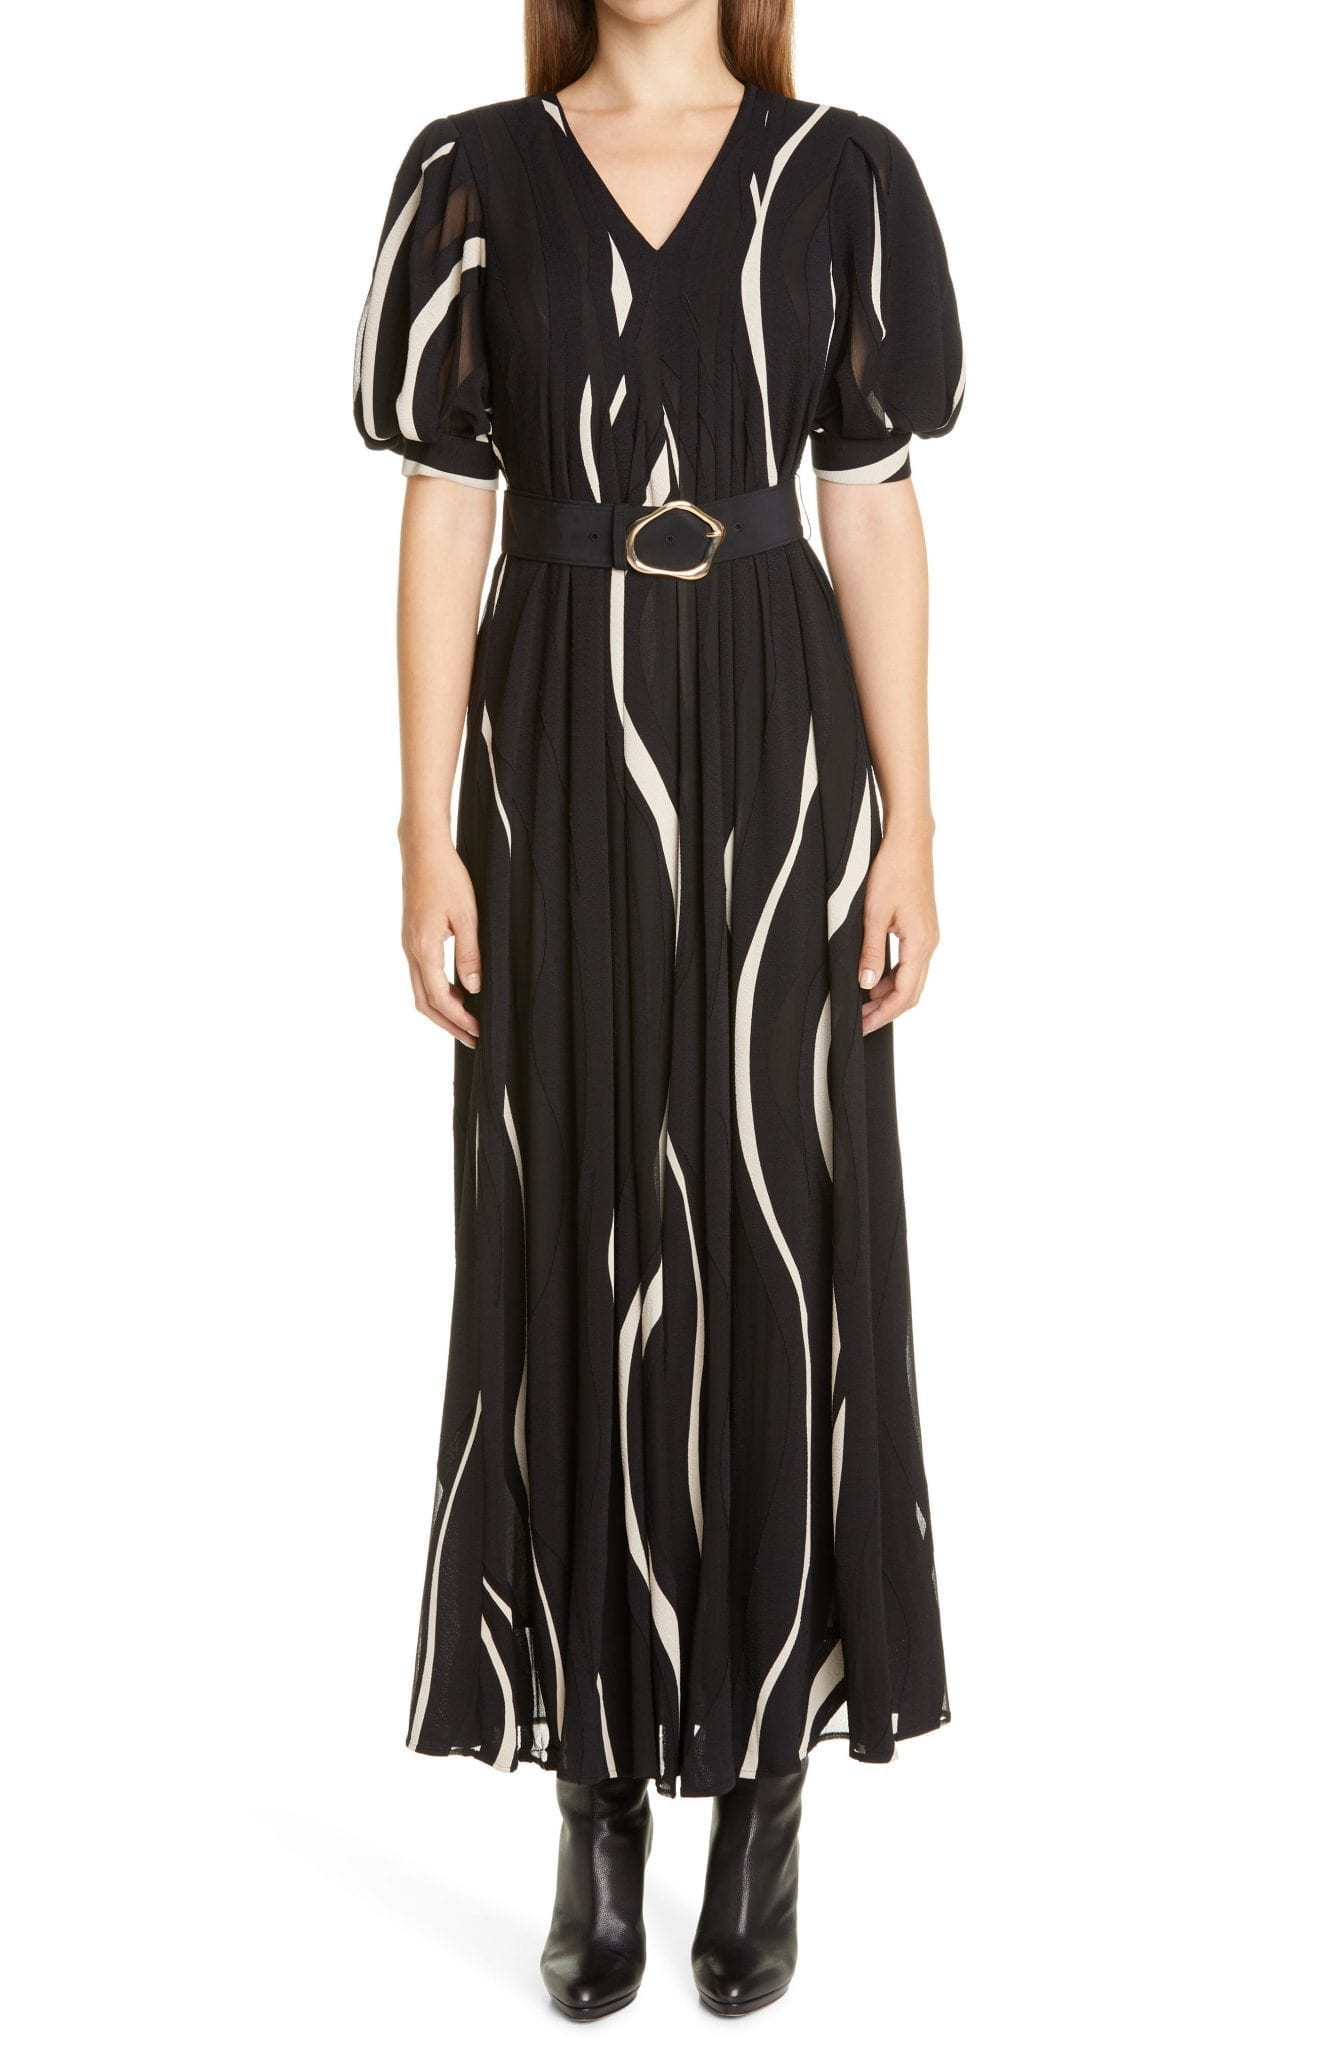 LAFAYETTE 148 NEW YORK Sutherland Wave Panel Belted Dress